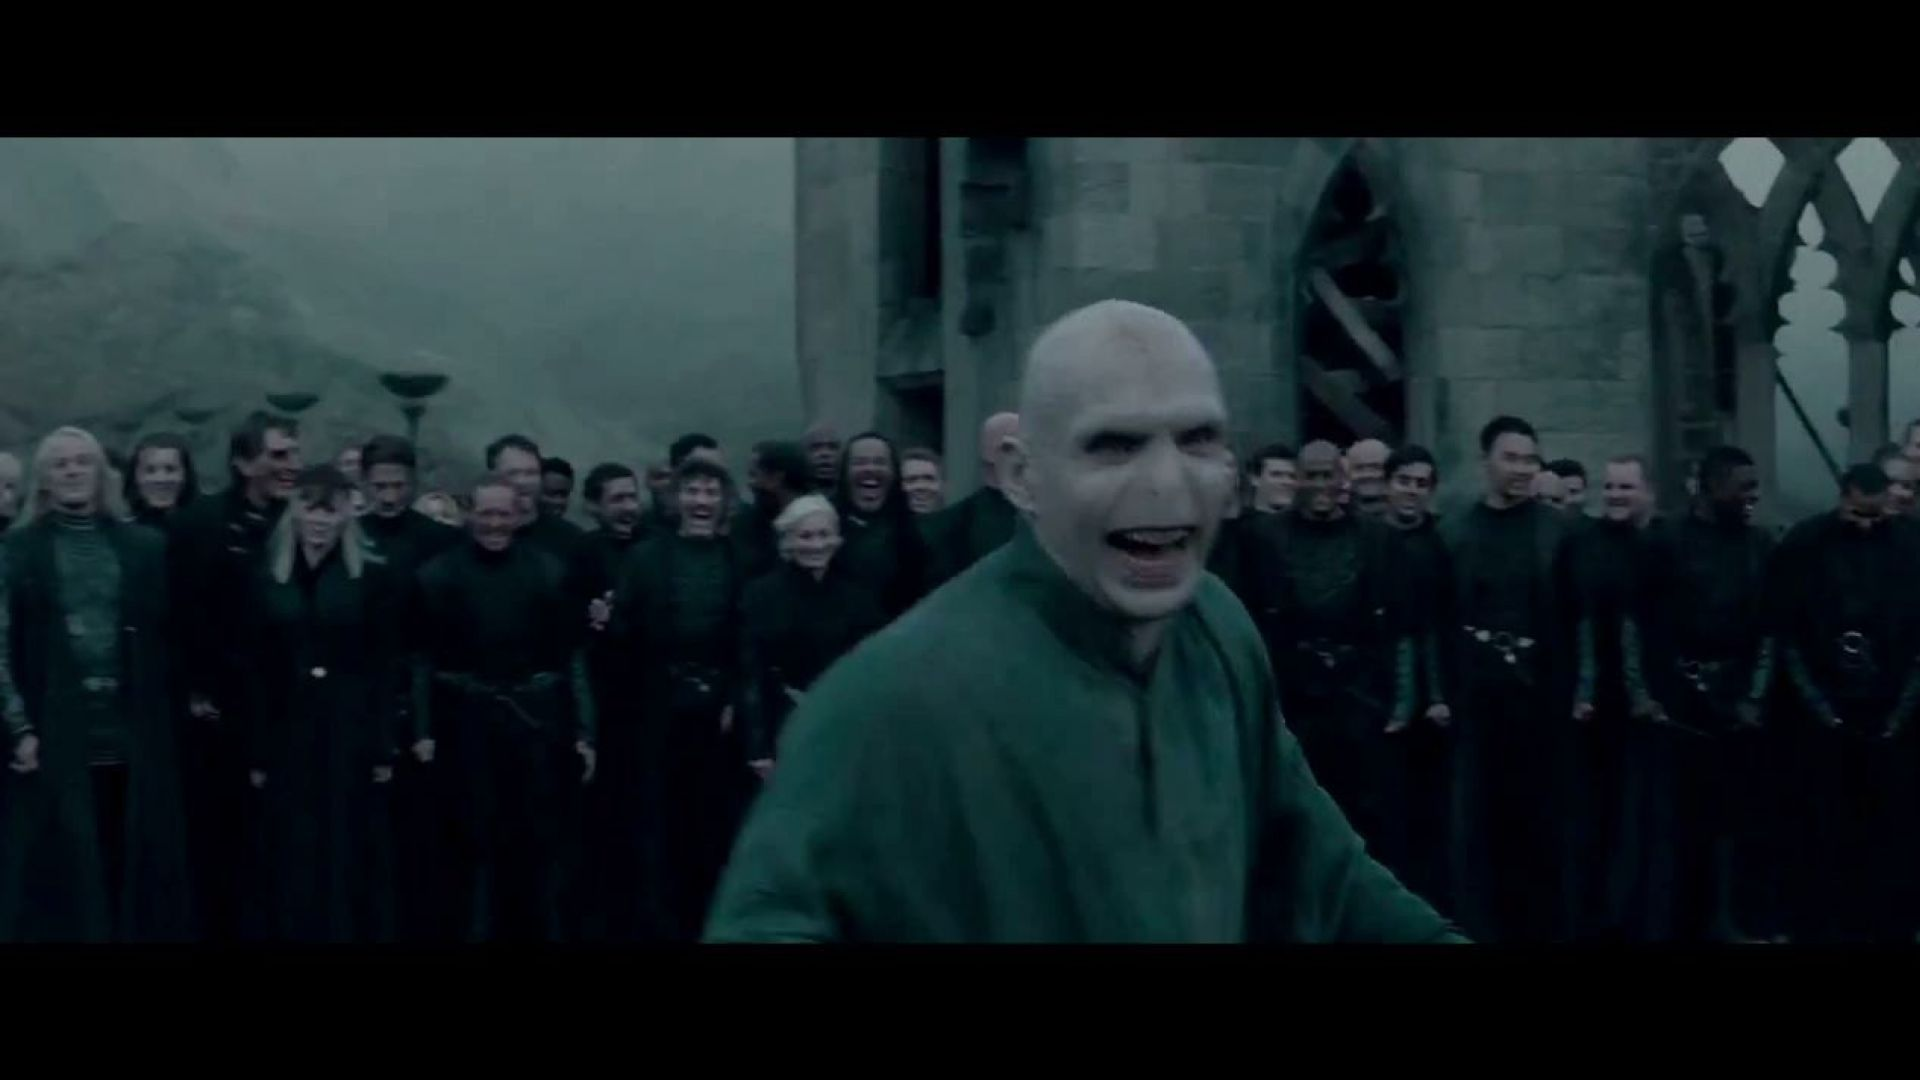 If you have to ask, you'll never know. Harry Potter 7 Part 2